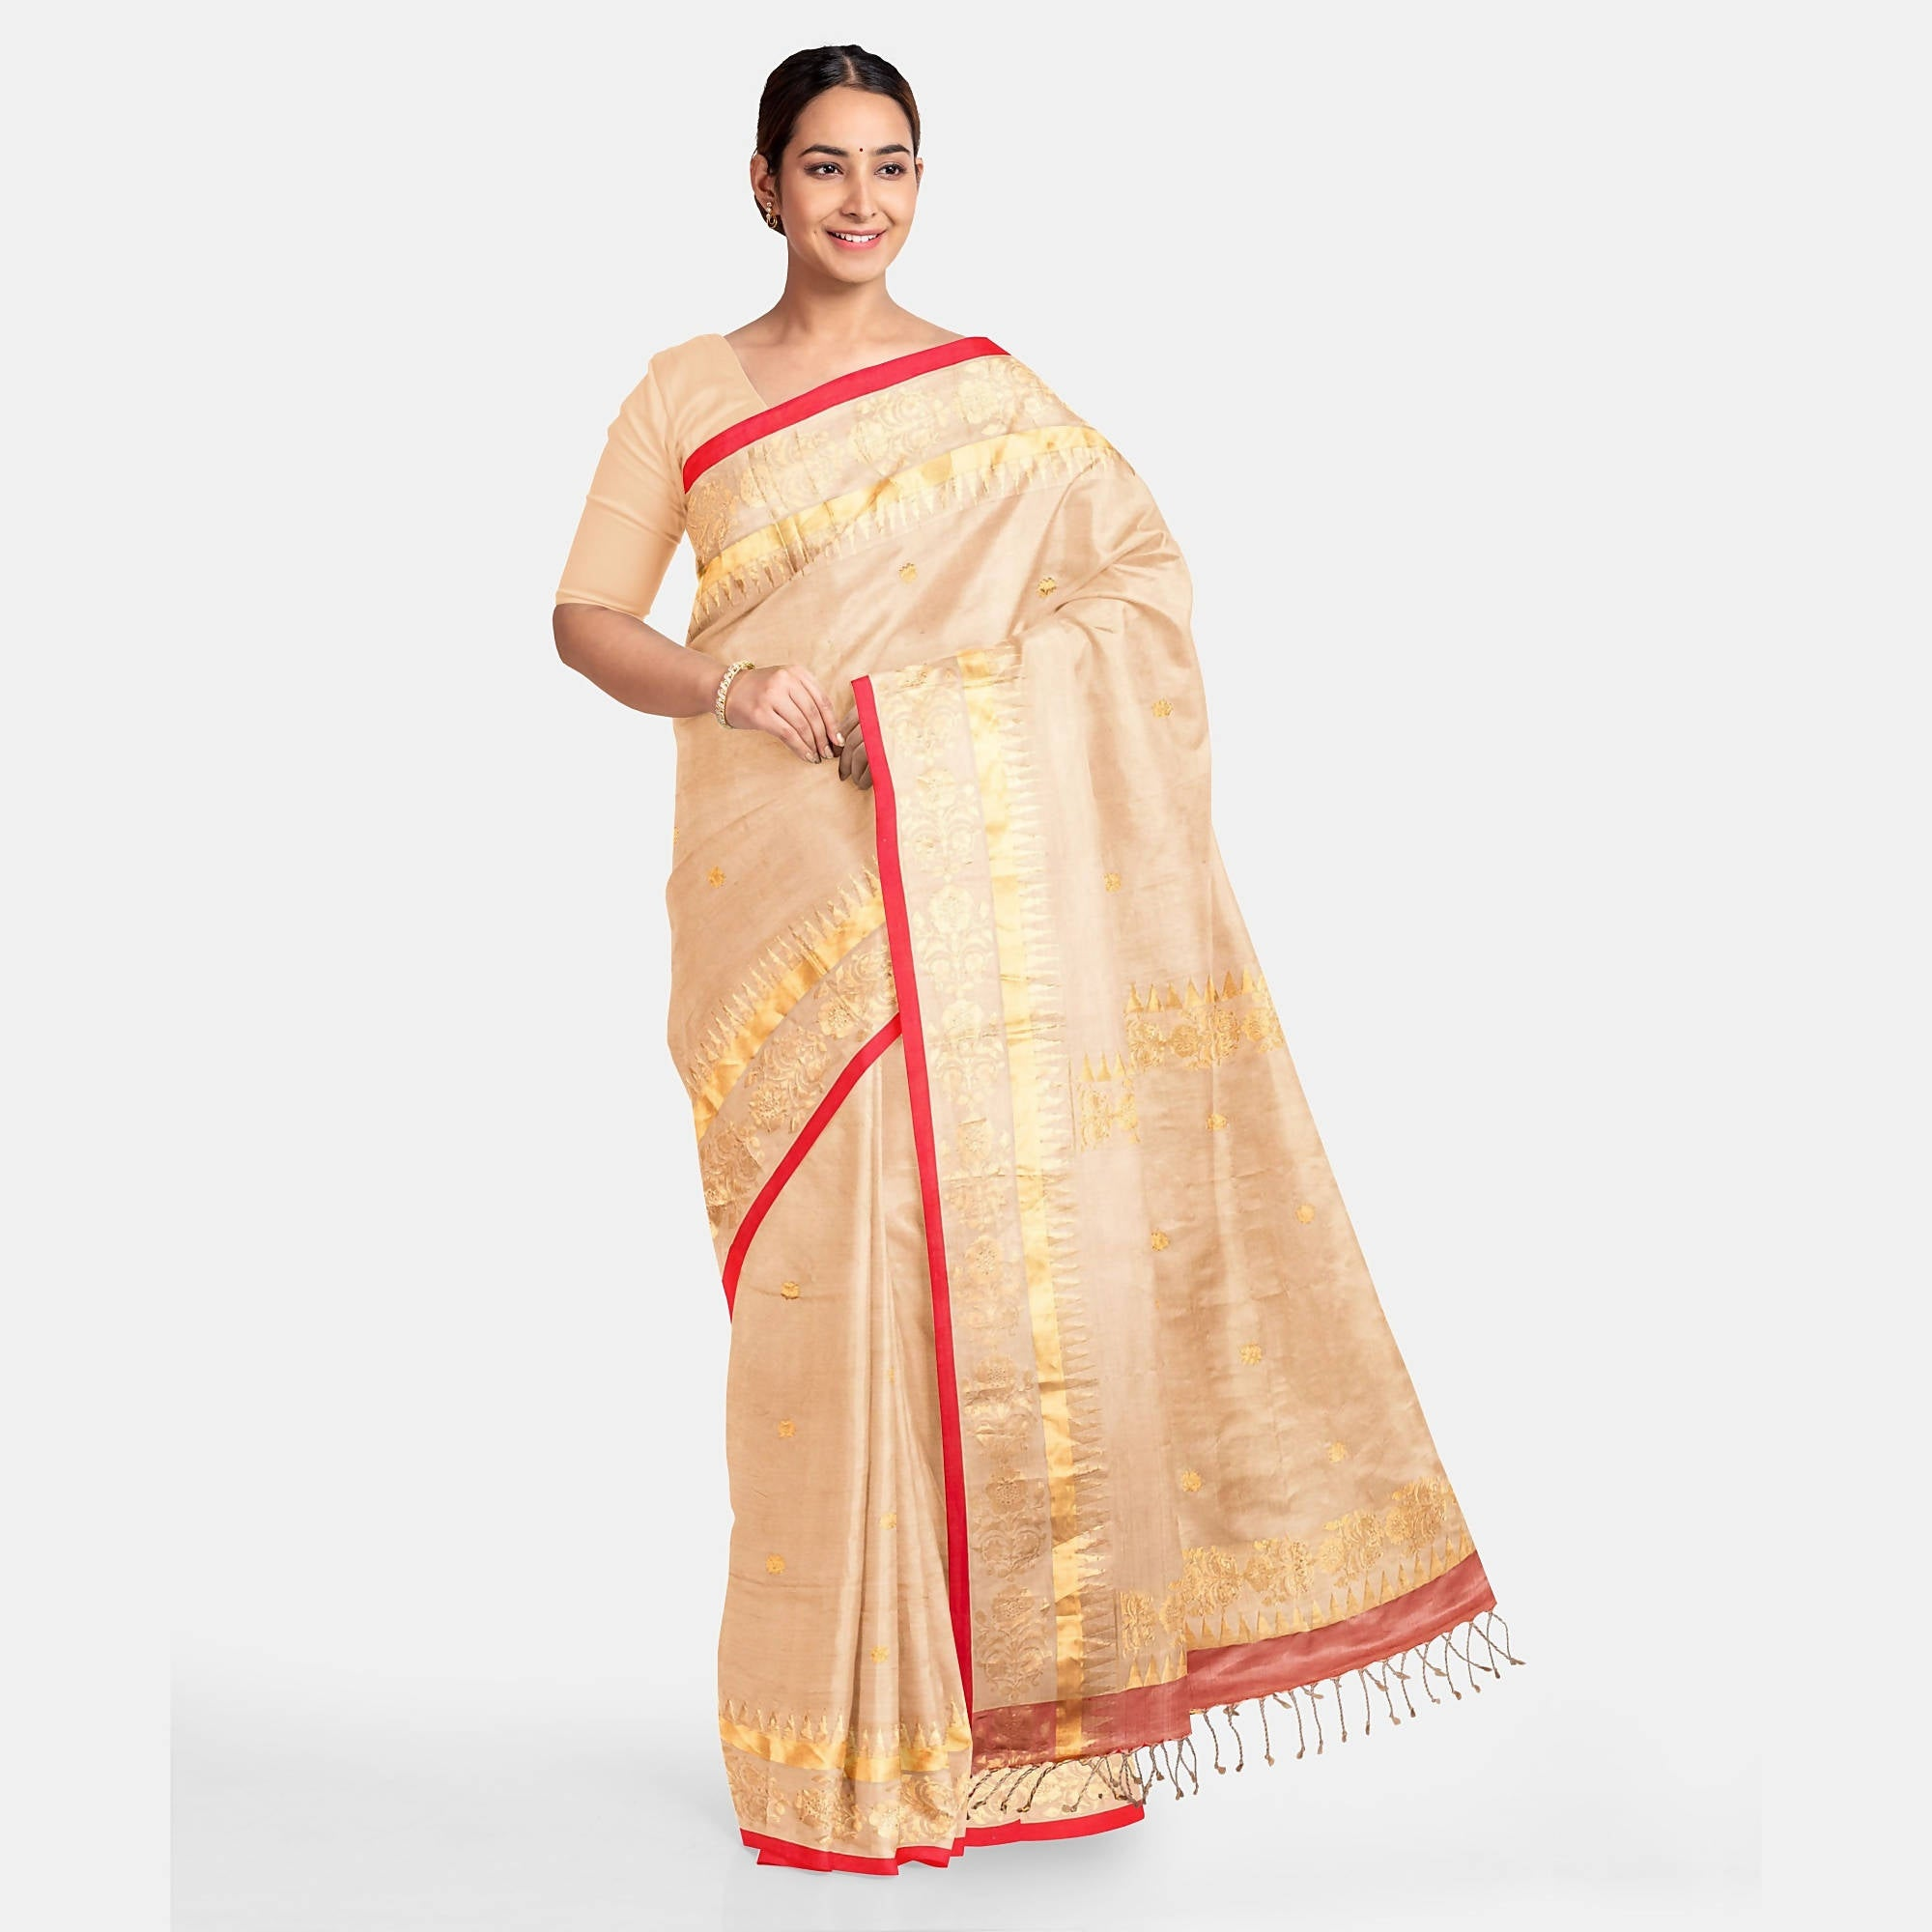 Biswa Bangla Handwoven Silk Saree - Golden Beige